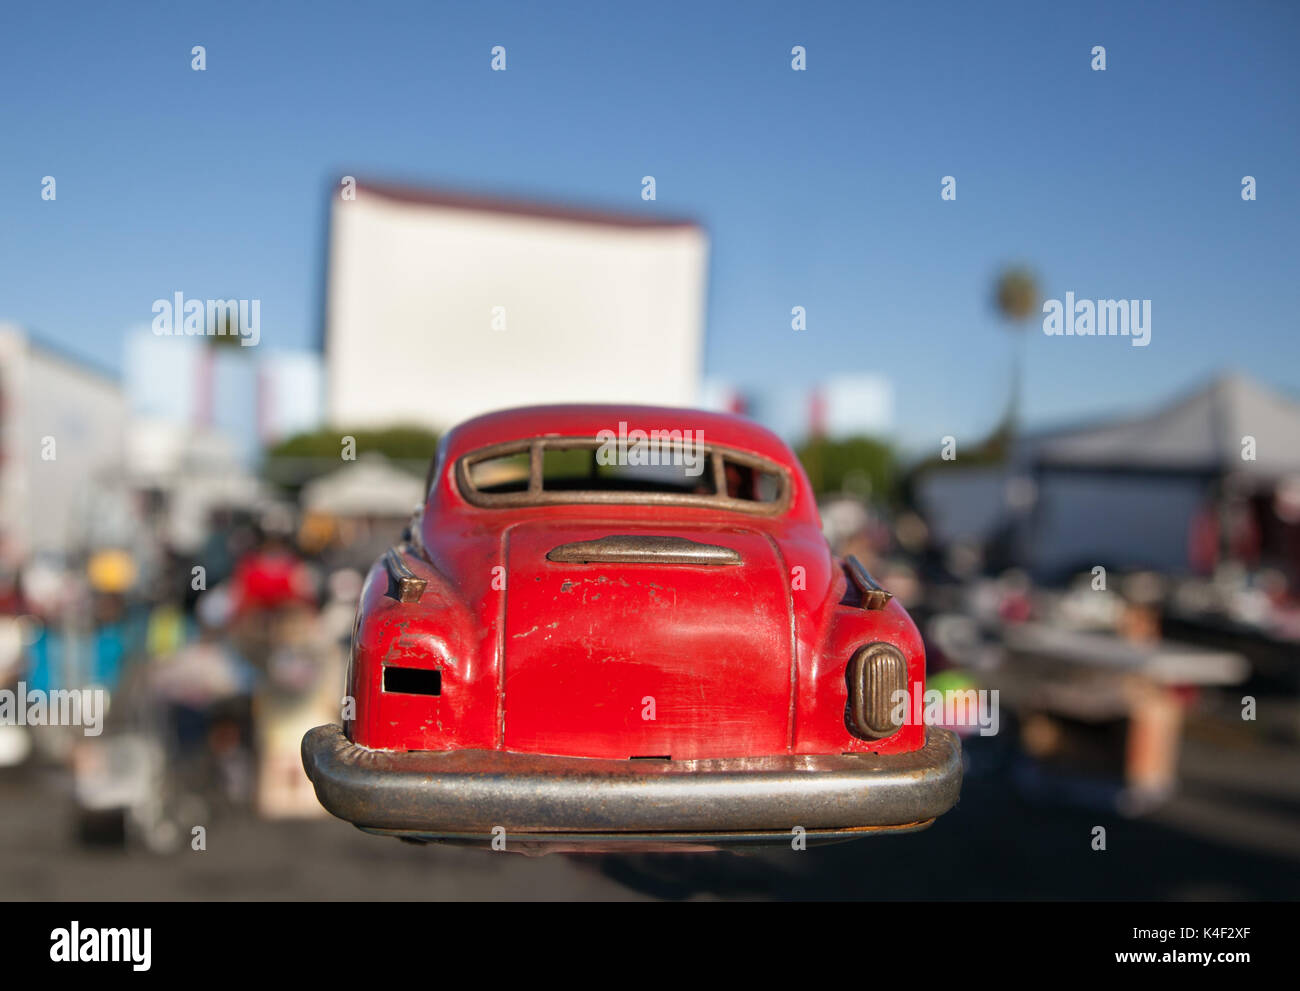 Rear end of old vintage classic metal toy car at swap meet  drive in. This car was found while treasure hunting at the Roadium open air flea market. - Stock Image